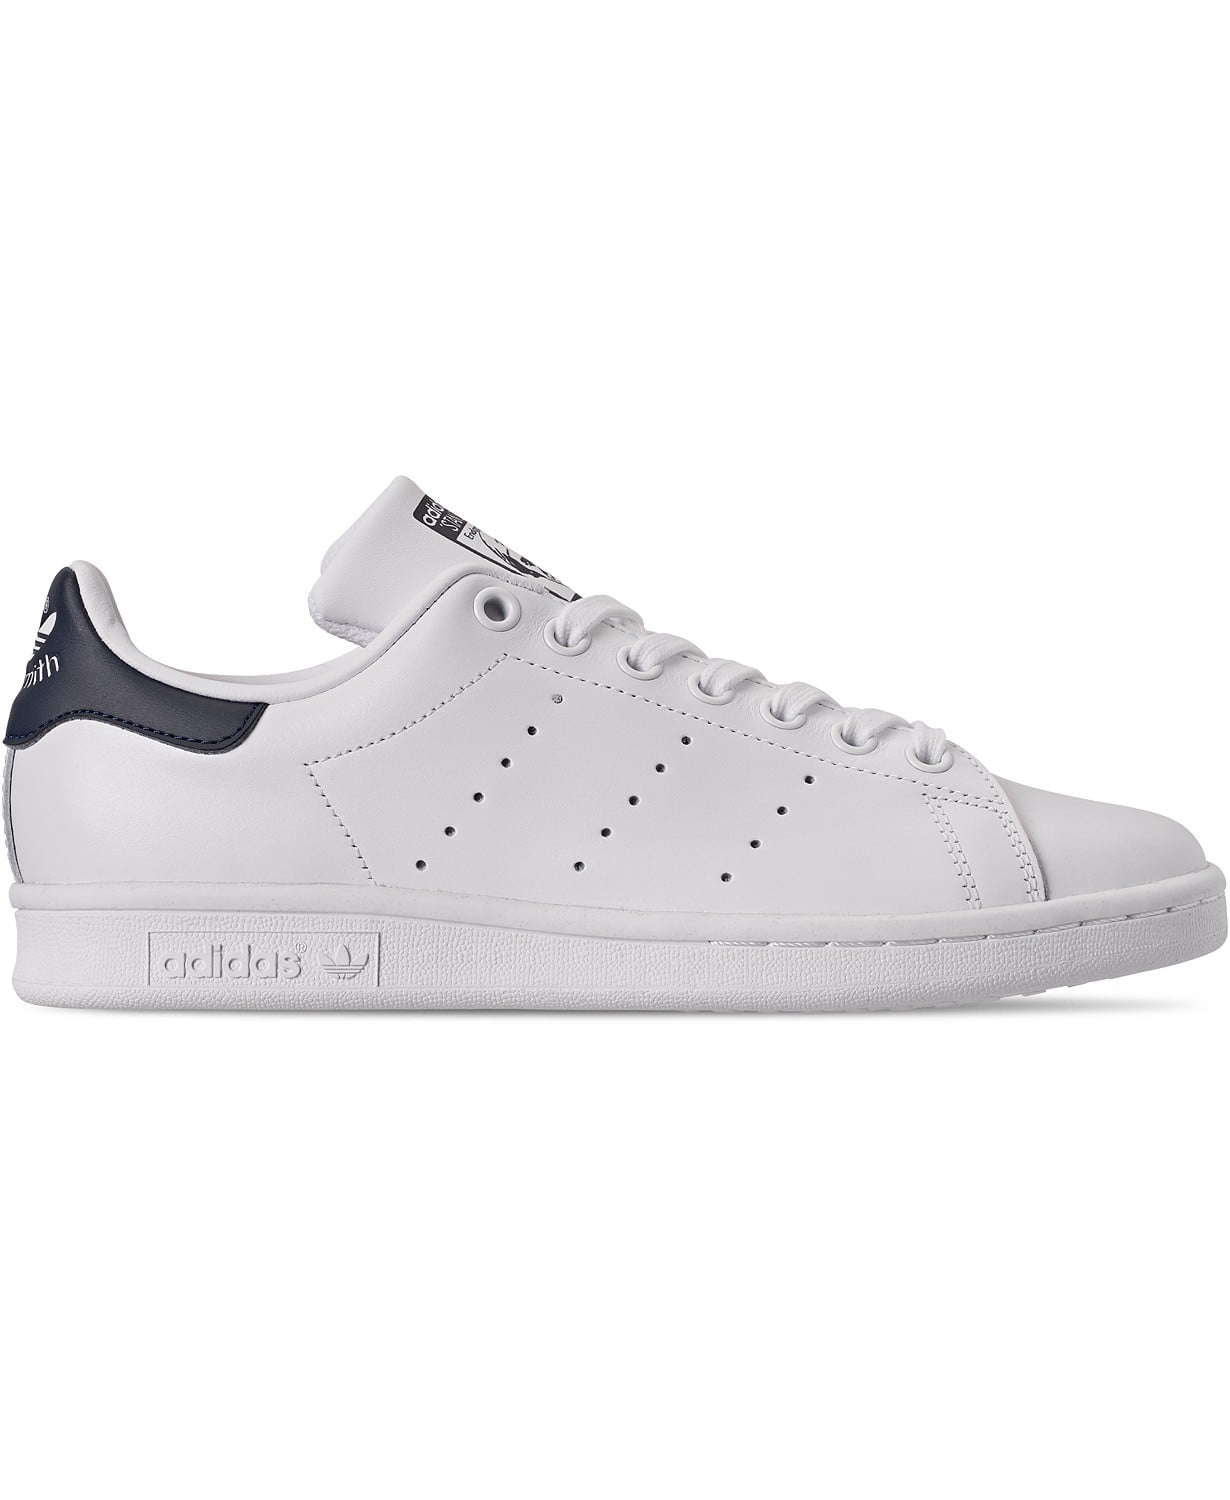 Adidas Stan Smith Sneakers   Macy's Has 7,000 Shoes Online, but ...